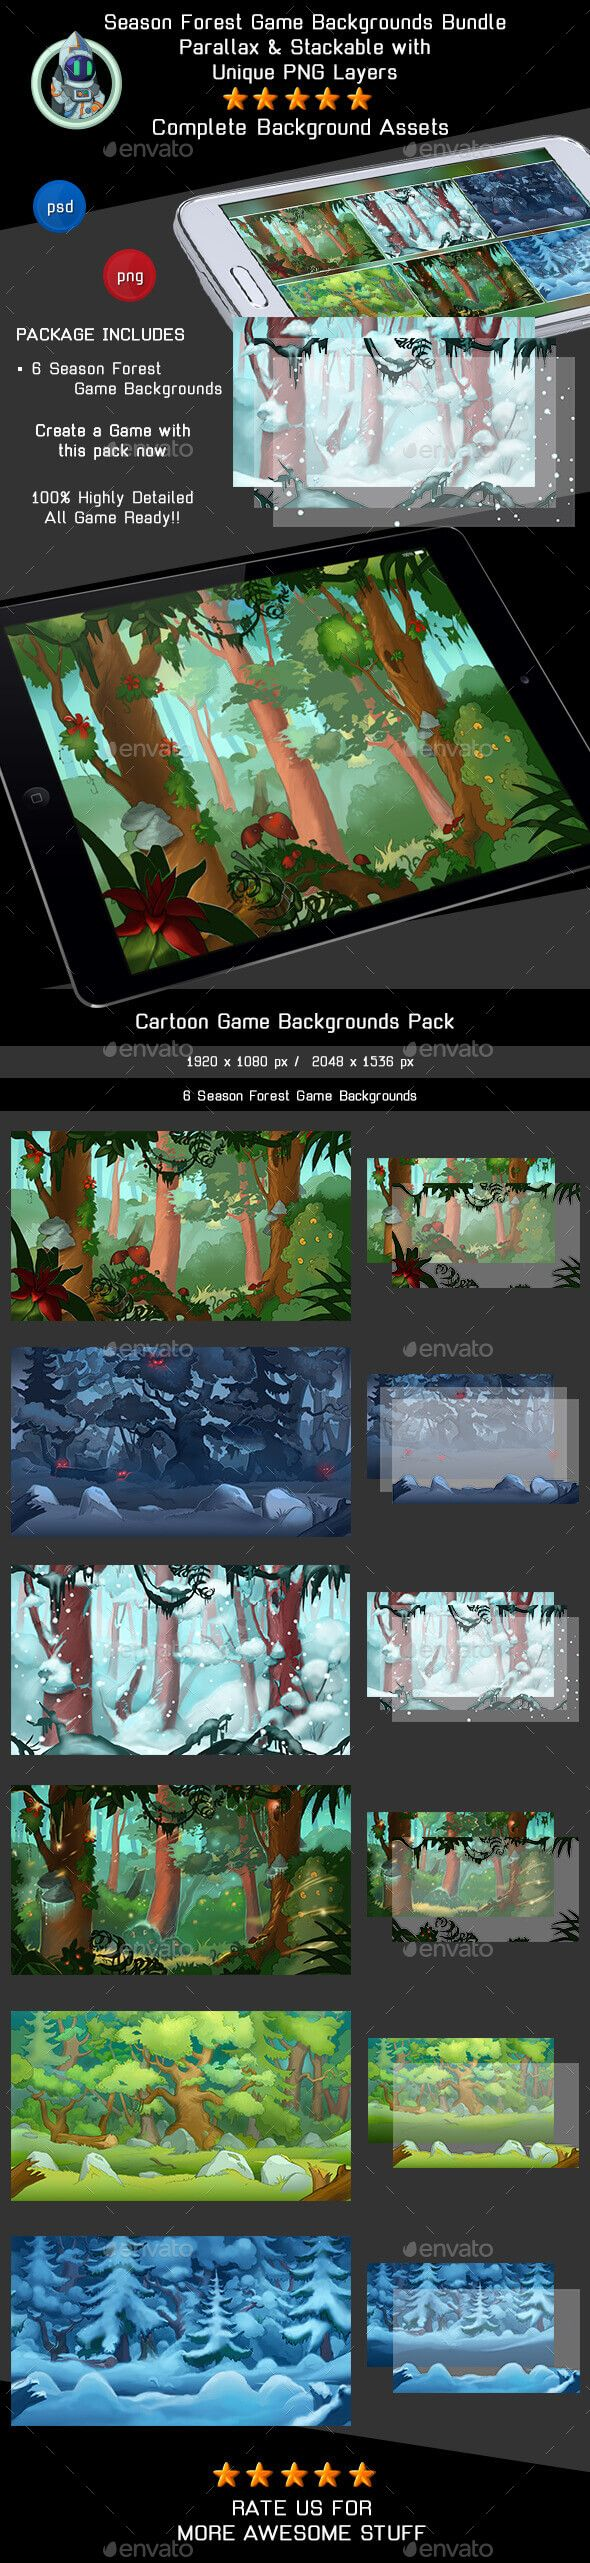 6 Season Forest Game Backgrounds - Parallax and Tileable - Backgrounds Game Assets